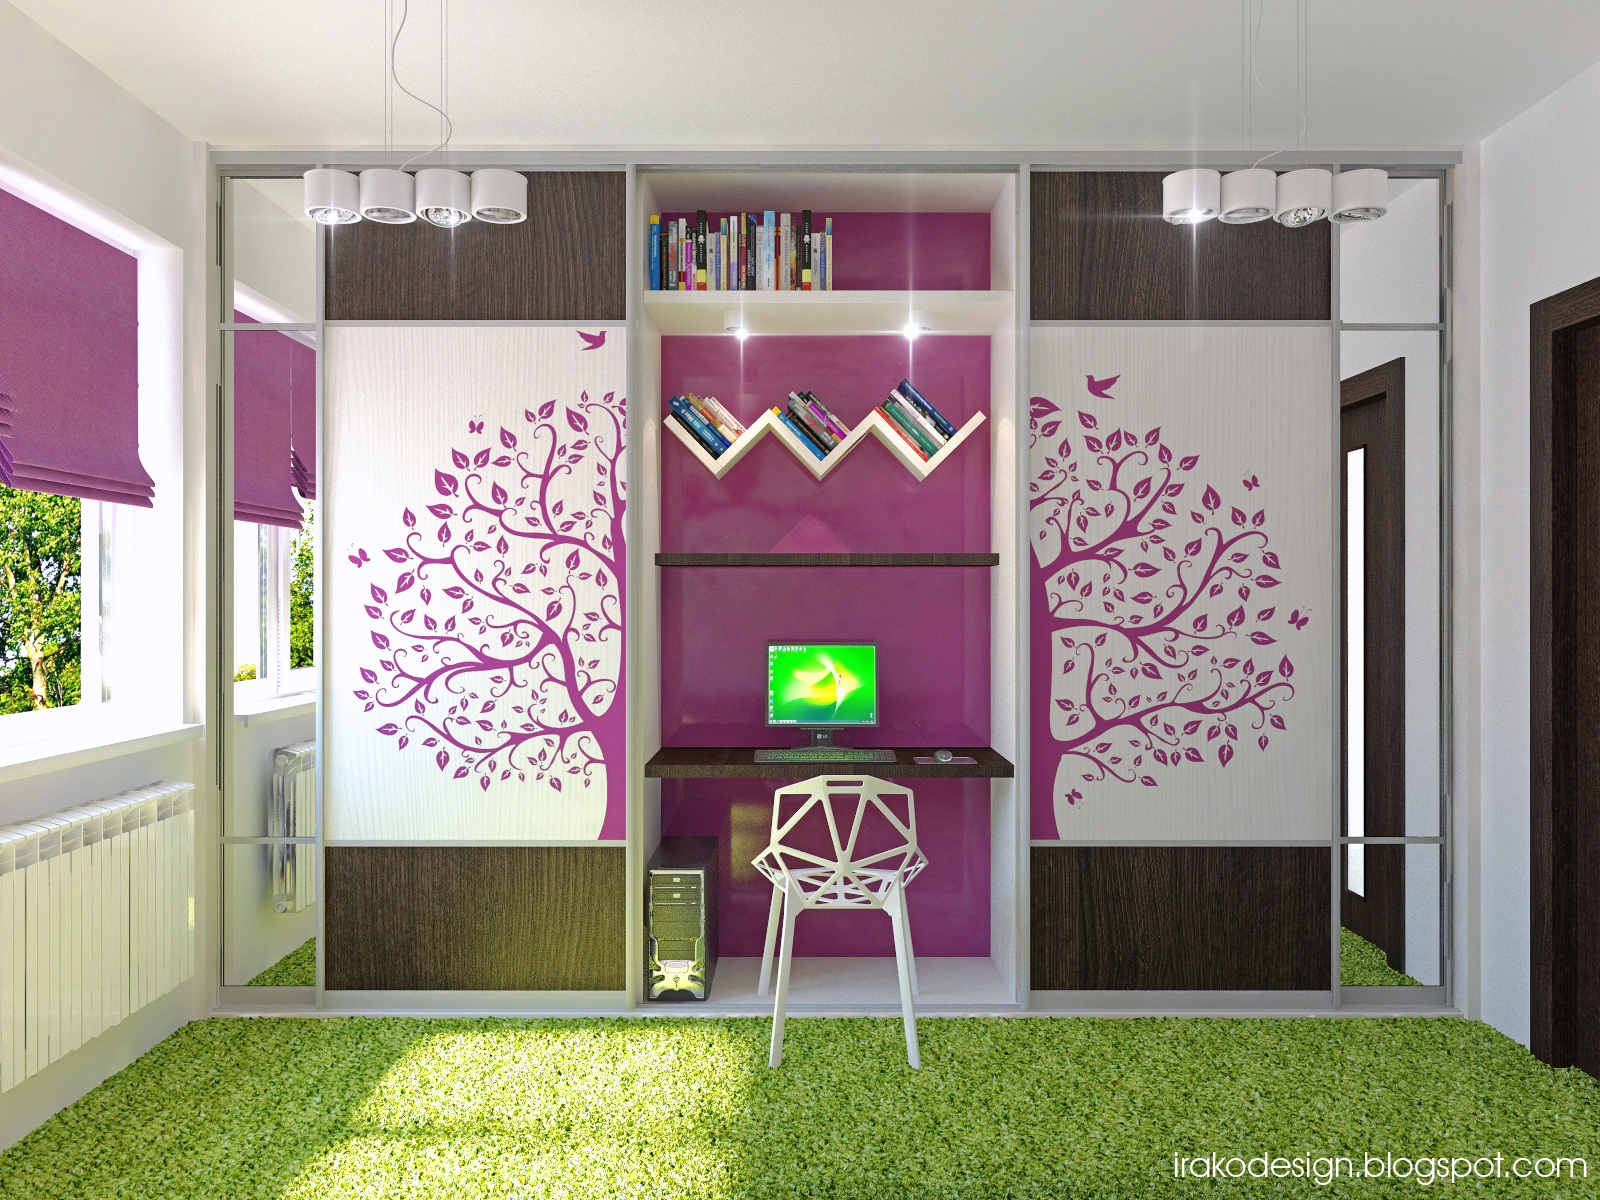 Bedroom designs for girls green - Bedroom Designs For Girls Green 27